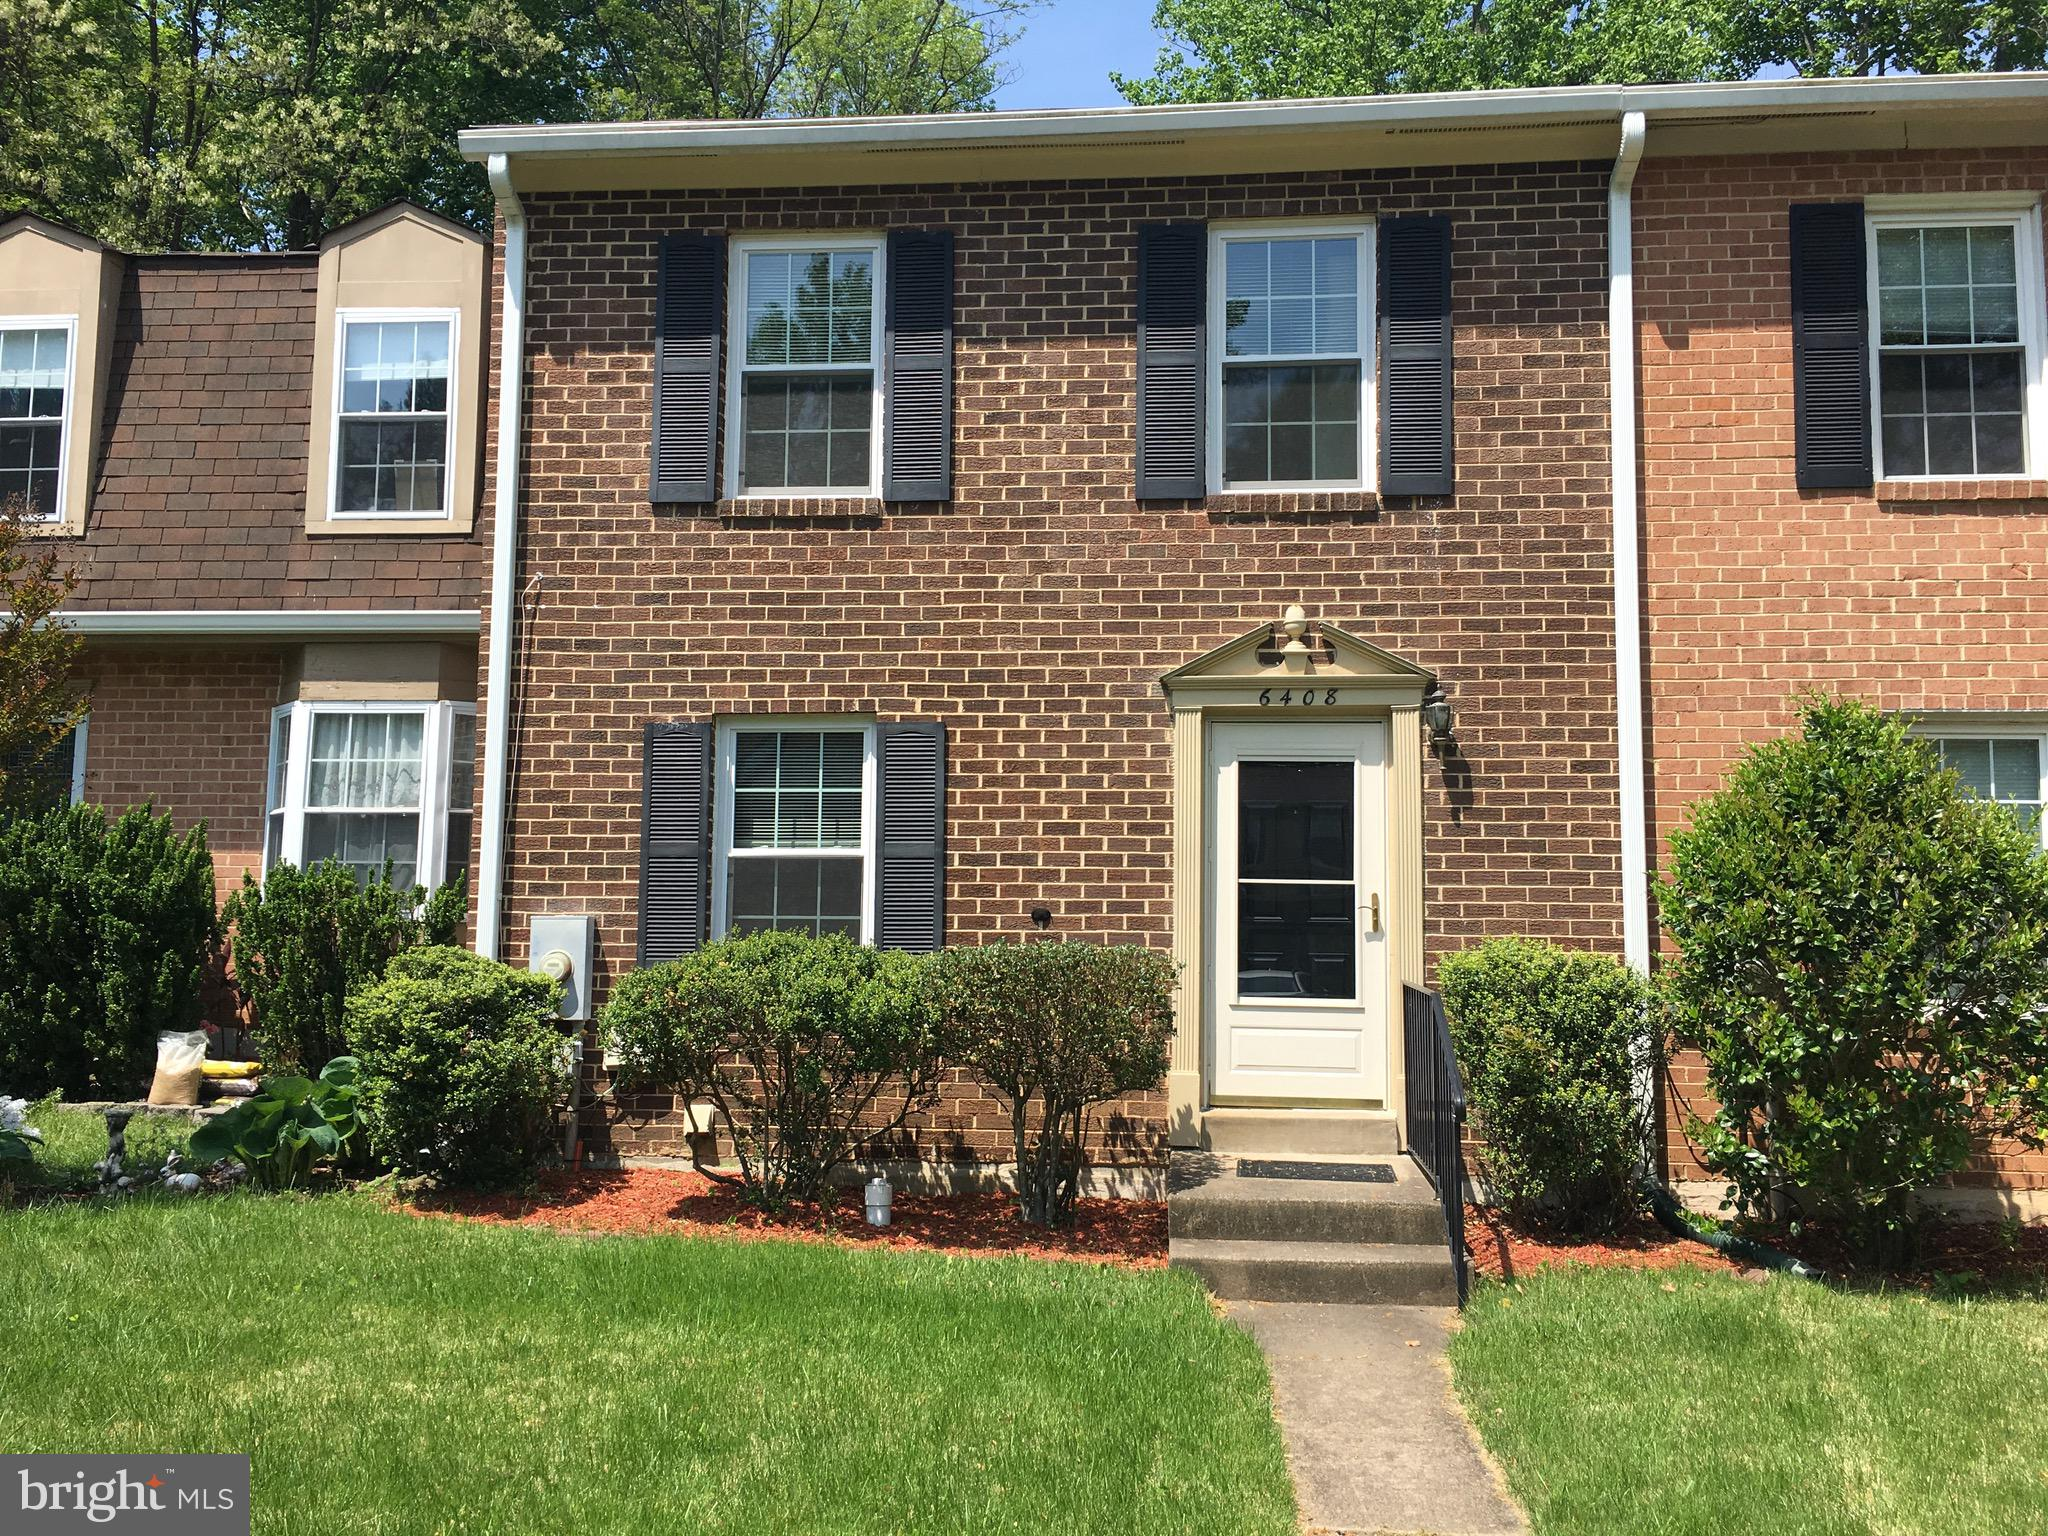 Welcome to this cared for home in the  sought after Shannon Station neighborhood.  Upgrades to include:  Wooden patio/deck outside of walk out basement (2010).  Complete HVAC upgrade (2012).  Water heater (2013).  Washer and dryer (2014).  Carpet first floor only (2015). New water shut off valve and PRV valve (2017).  Refrigerator (2012).  Upstairs larger bathroom full remodel (tile, vanity, toilet, tub and fixtures) (2016).  Upstairs master bathroom that has shower only (new toilet, vanity and professionally resurfaced shower tiles) (2015).  First floor half bathroom (new toilet and vanity) (2013).  New front entry door (2019).  Extra wide, no clog gutters installed in 2014.All new double pane windows (2019).  Open House Sunday, June 2, 1-4pm